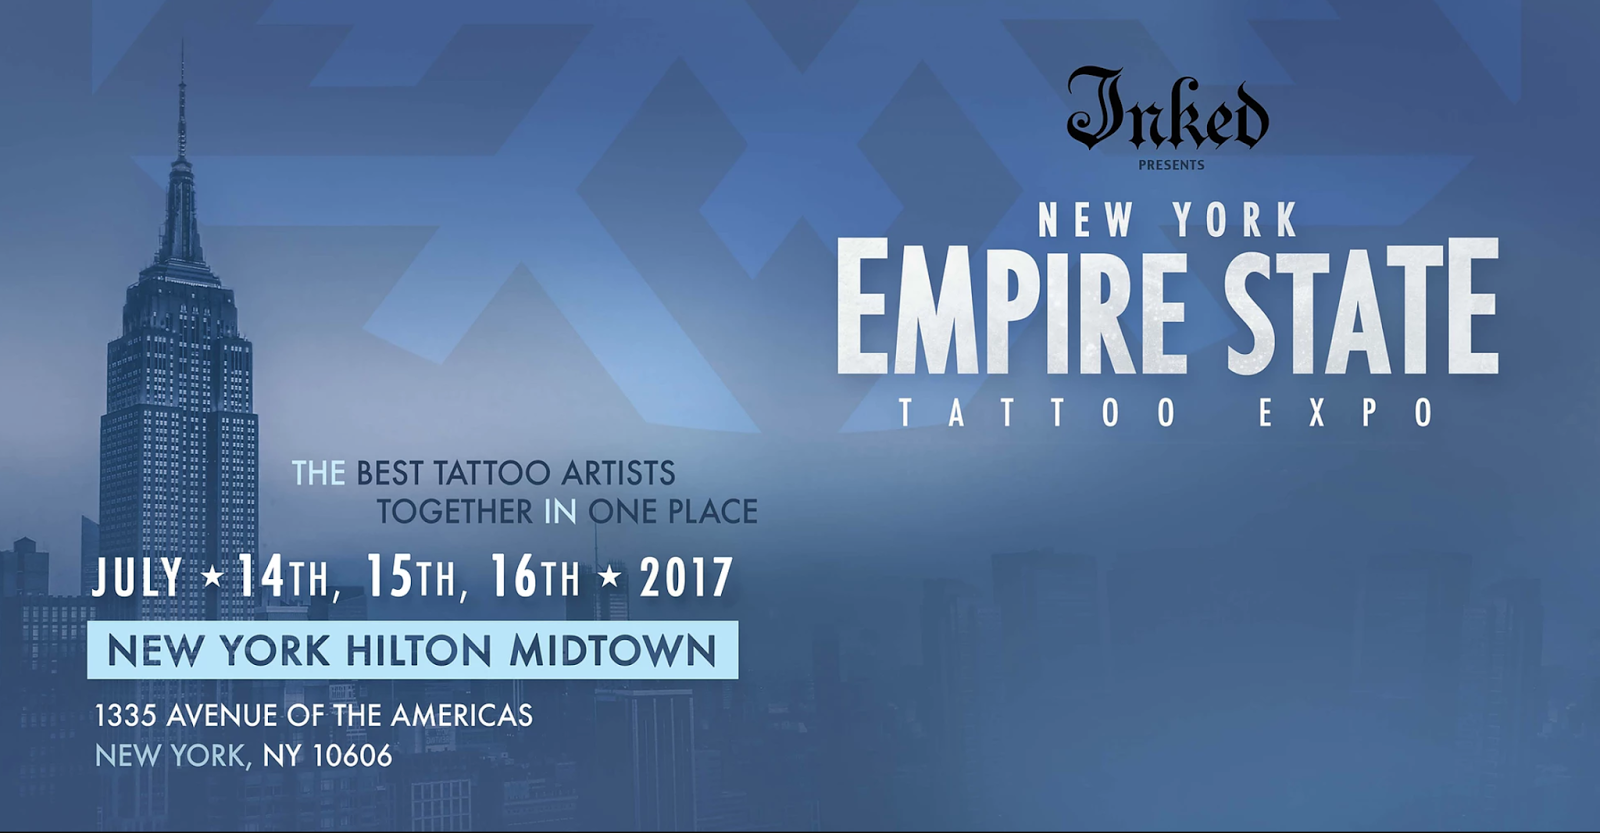 Empire state tattoo expo 2017 tattoos eduardo fernandes for Best tattoo artists in nyc 2017